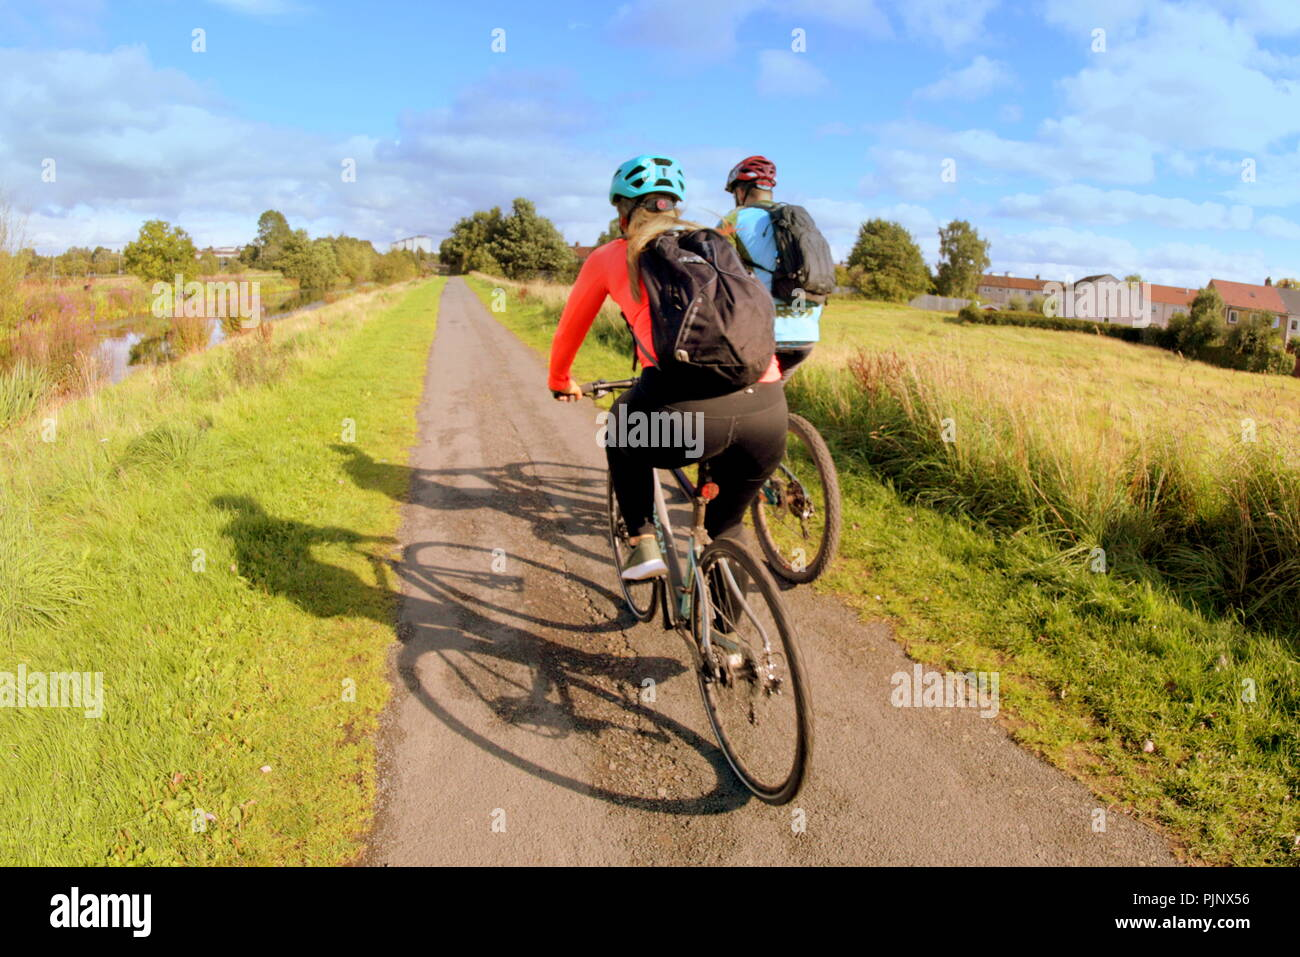 Glasgow, Scotland, UK. 8ht September, 2018. UK Weather: Sunny weather appears on the Forth and Clyde canal at the bike sculpture on national cycle route NCR 754 near Clydebank. Gerard Ferry/Alamy news - Stock Image